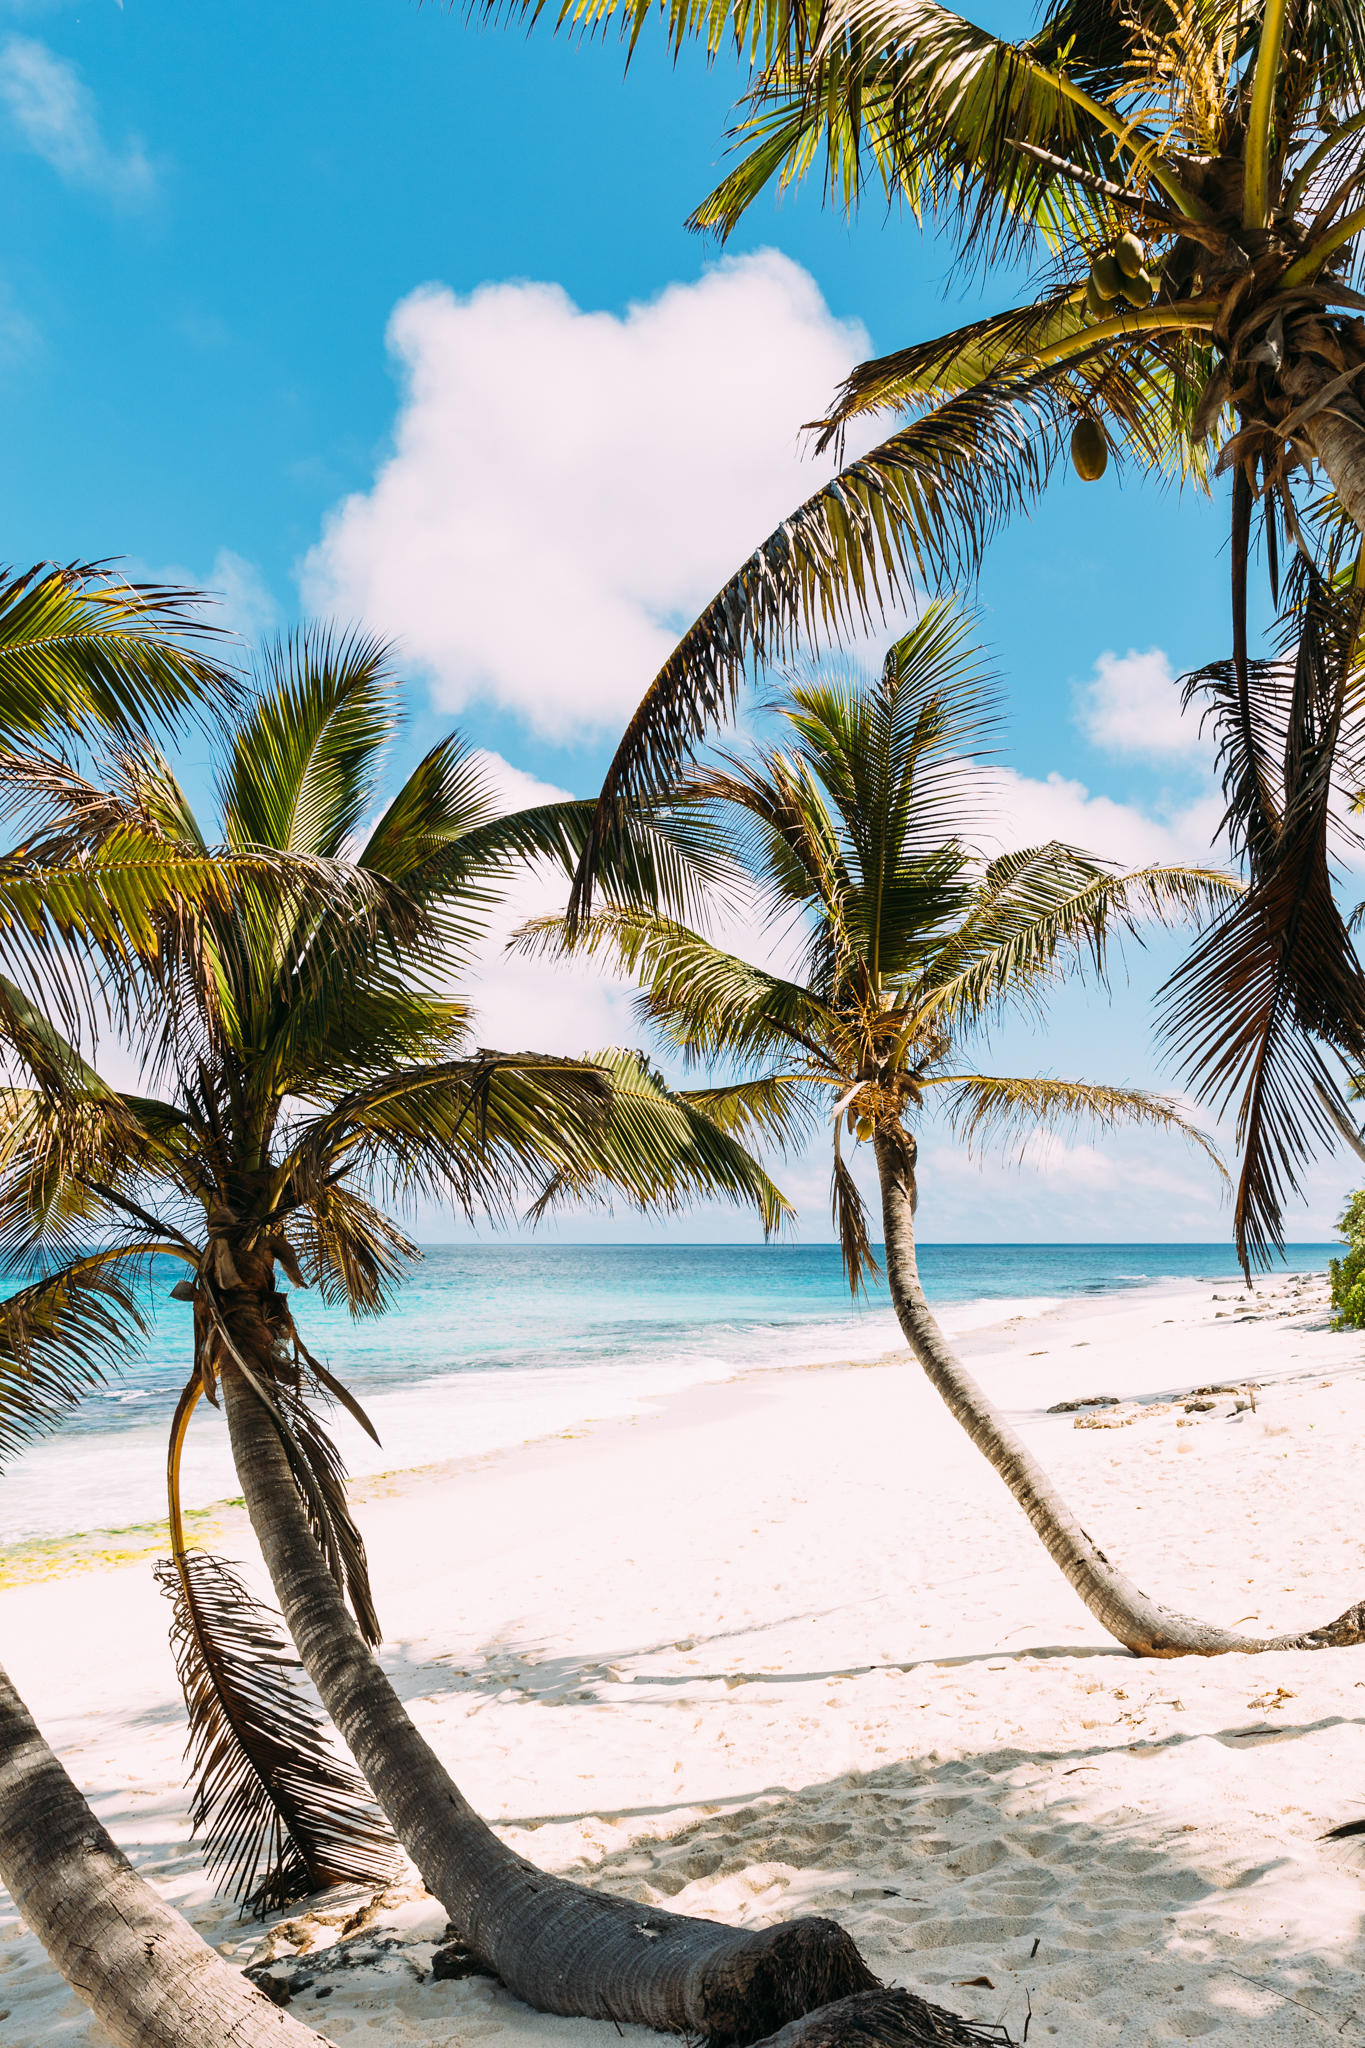 A tropical private-island scene of white sands with leaning coconut trees and bright blue waters on North Island